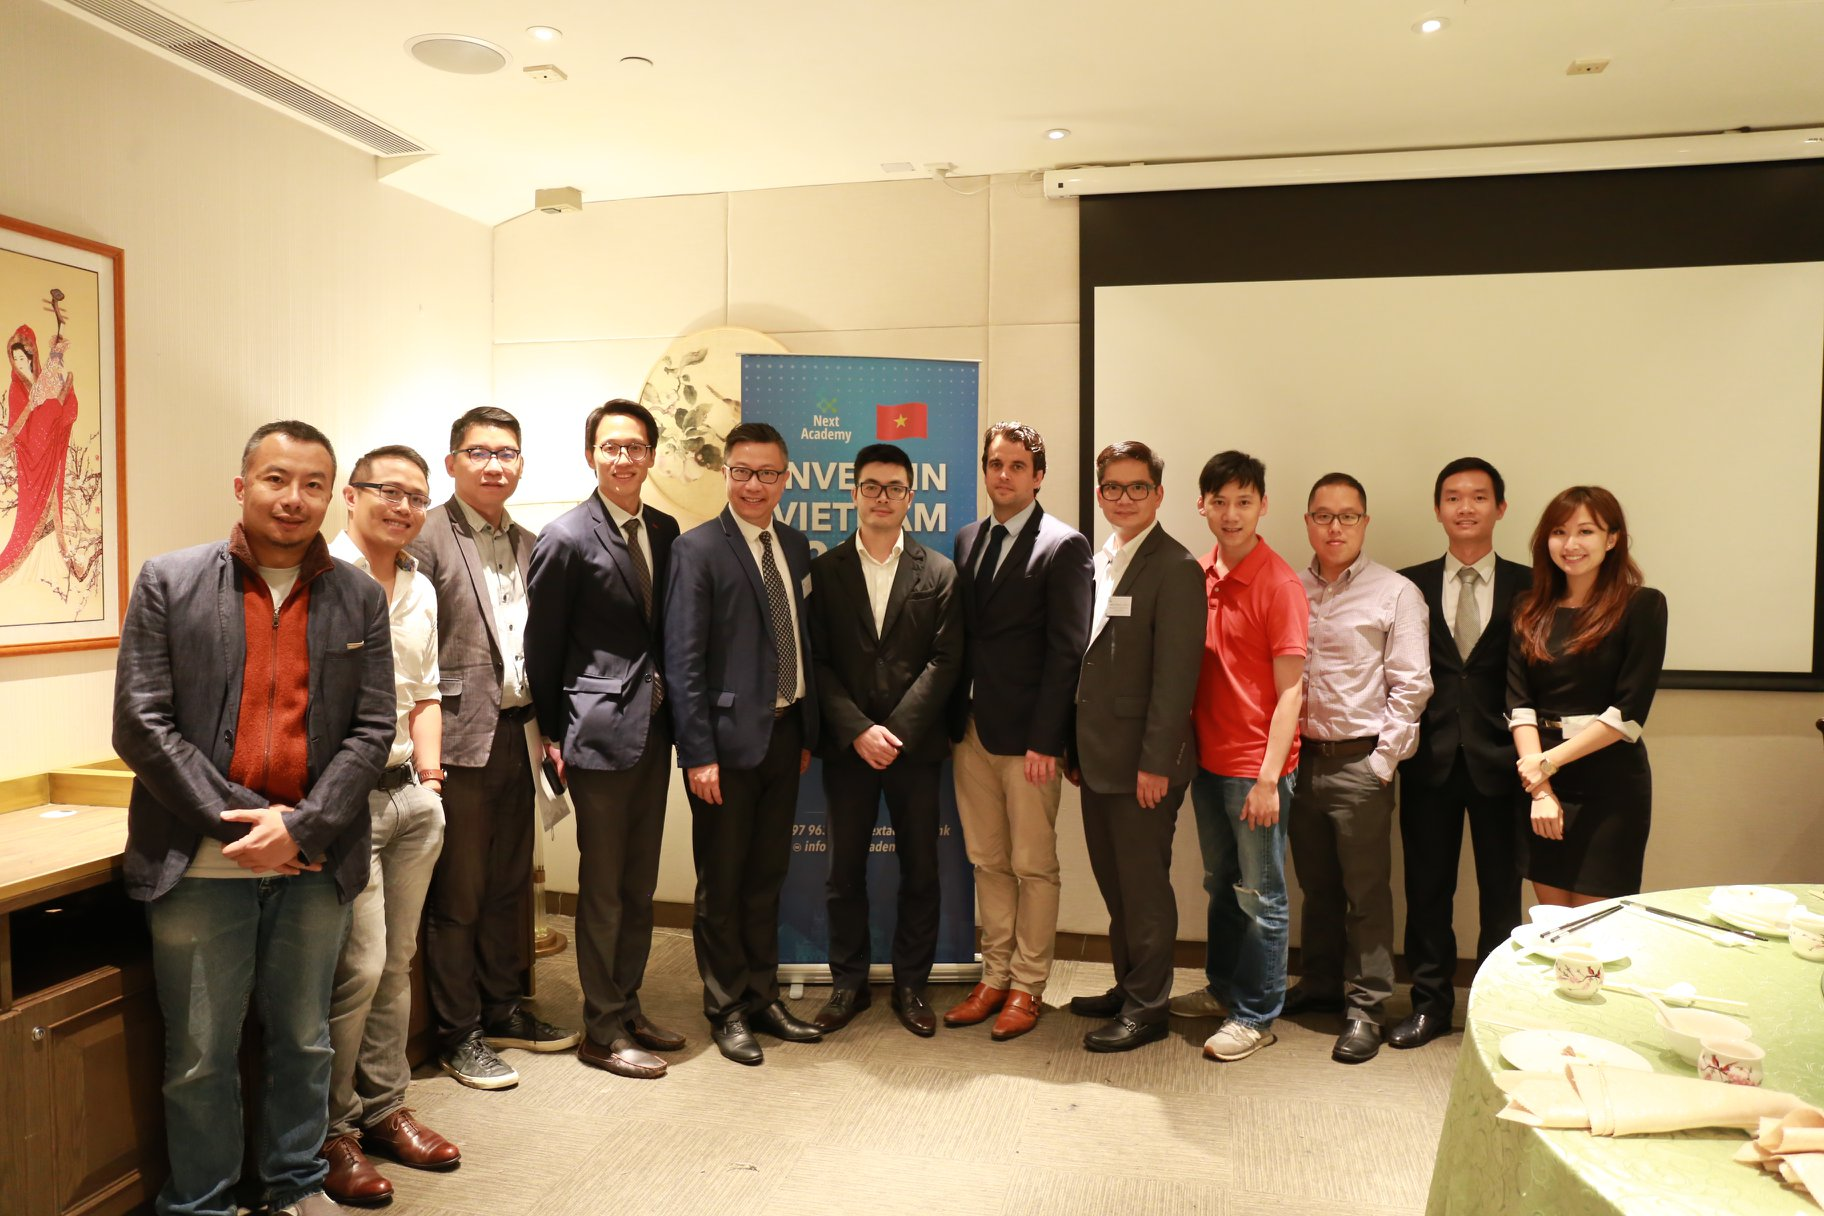 The Consulate General of Vietnam in Hong Kong and delegation from Vietnam